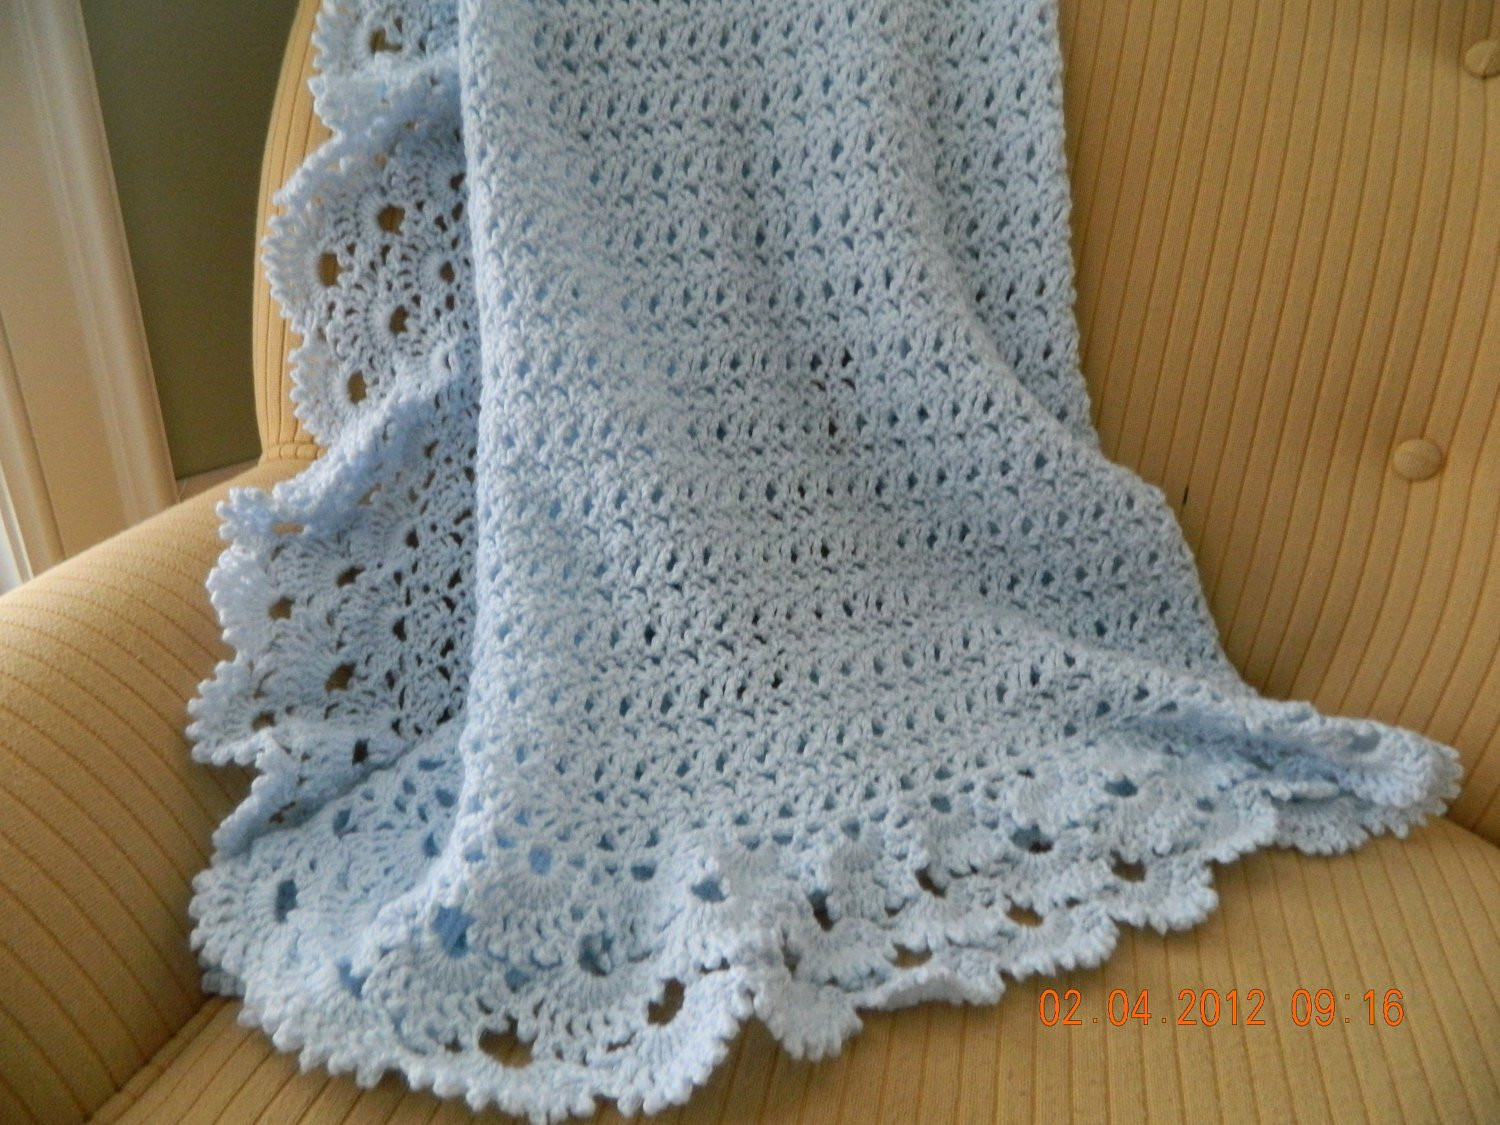 Luxury Baby Blue Crocheted Baby Blanket Shell Design Gorgeous 3 Crochet Shell Baby Blanket Of Lovely 50 Ideas Crochet Shell Baby Blanket